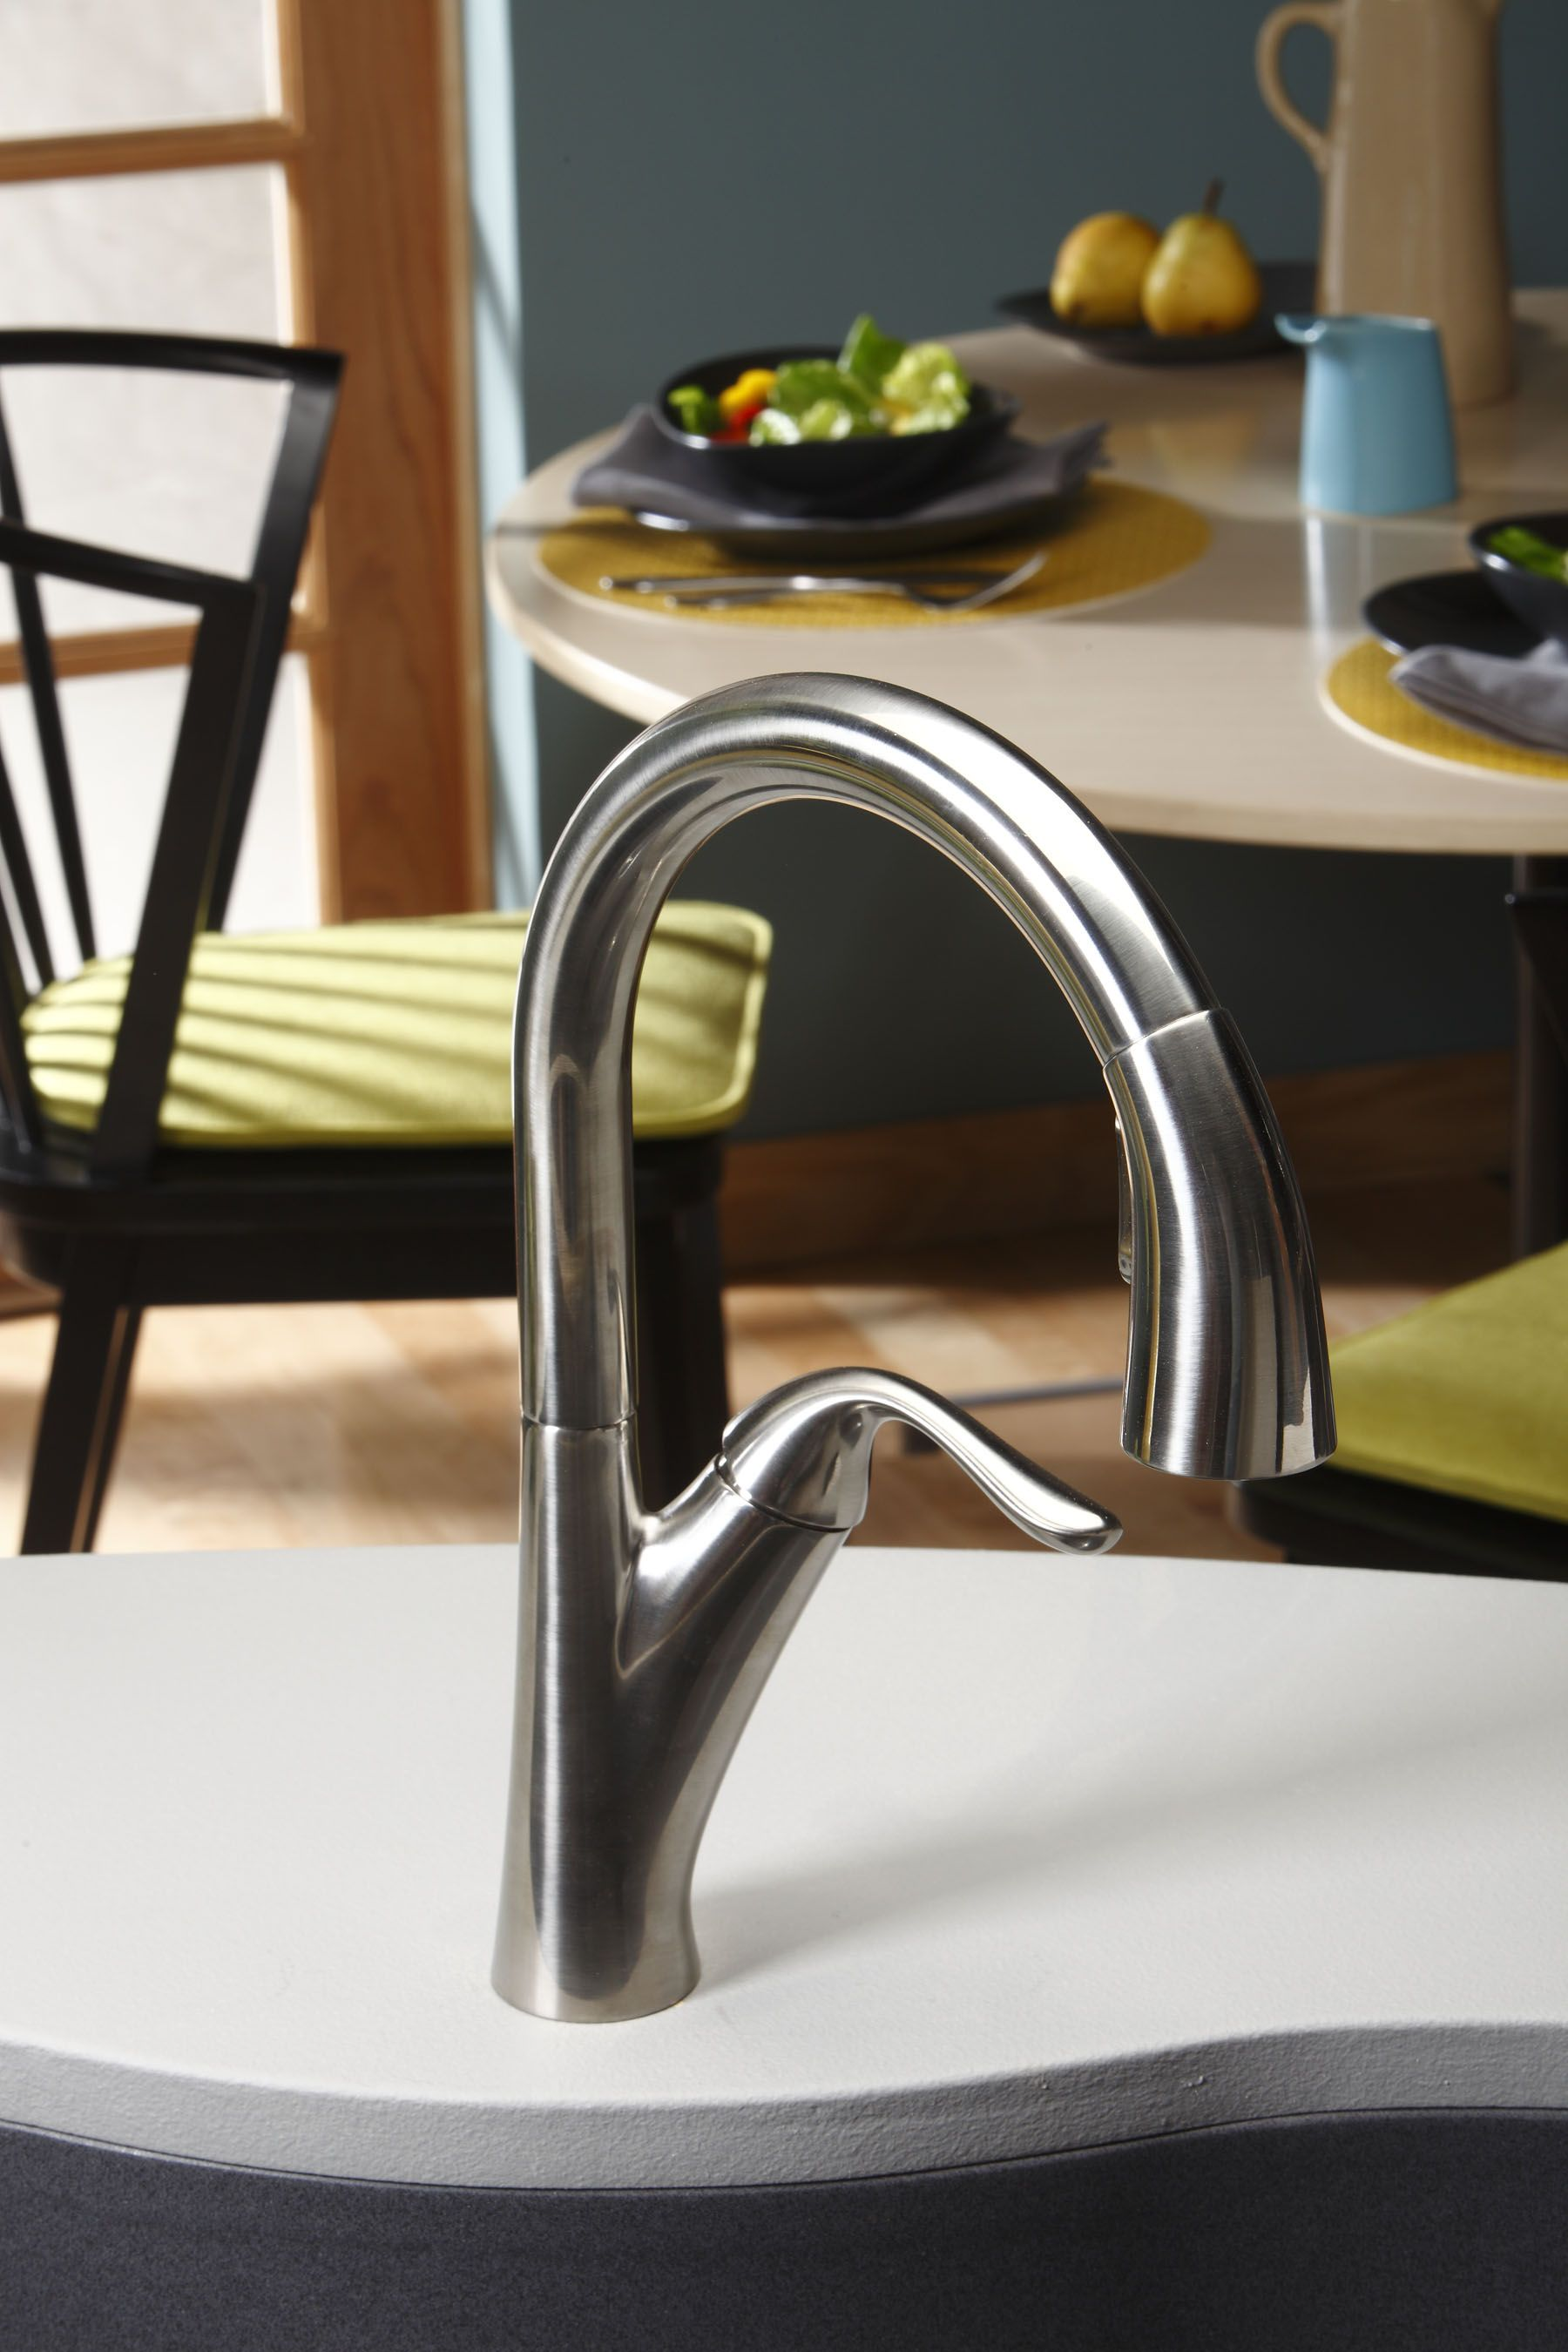 Harmony Single Hole Kitchen Faucet With Pull Down Spray And Forward Only Lever Handle With Images Single Hole Kitchen Faucet Elkay Kitchen Faucet